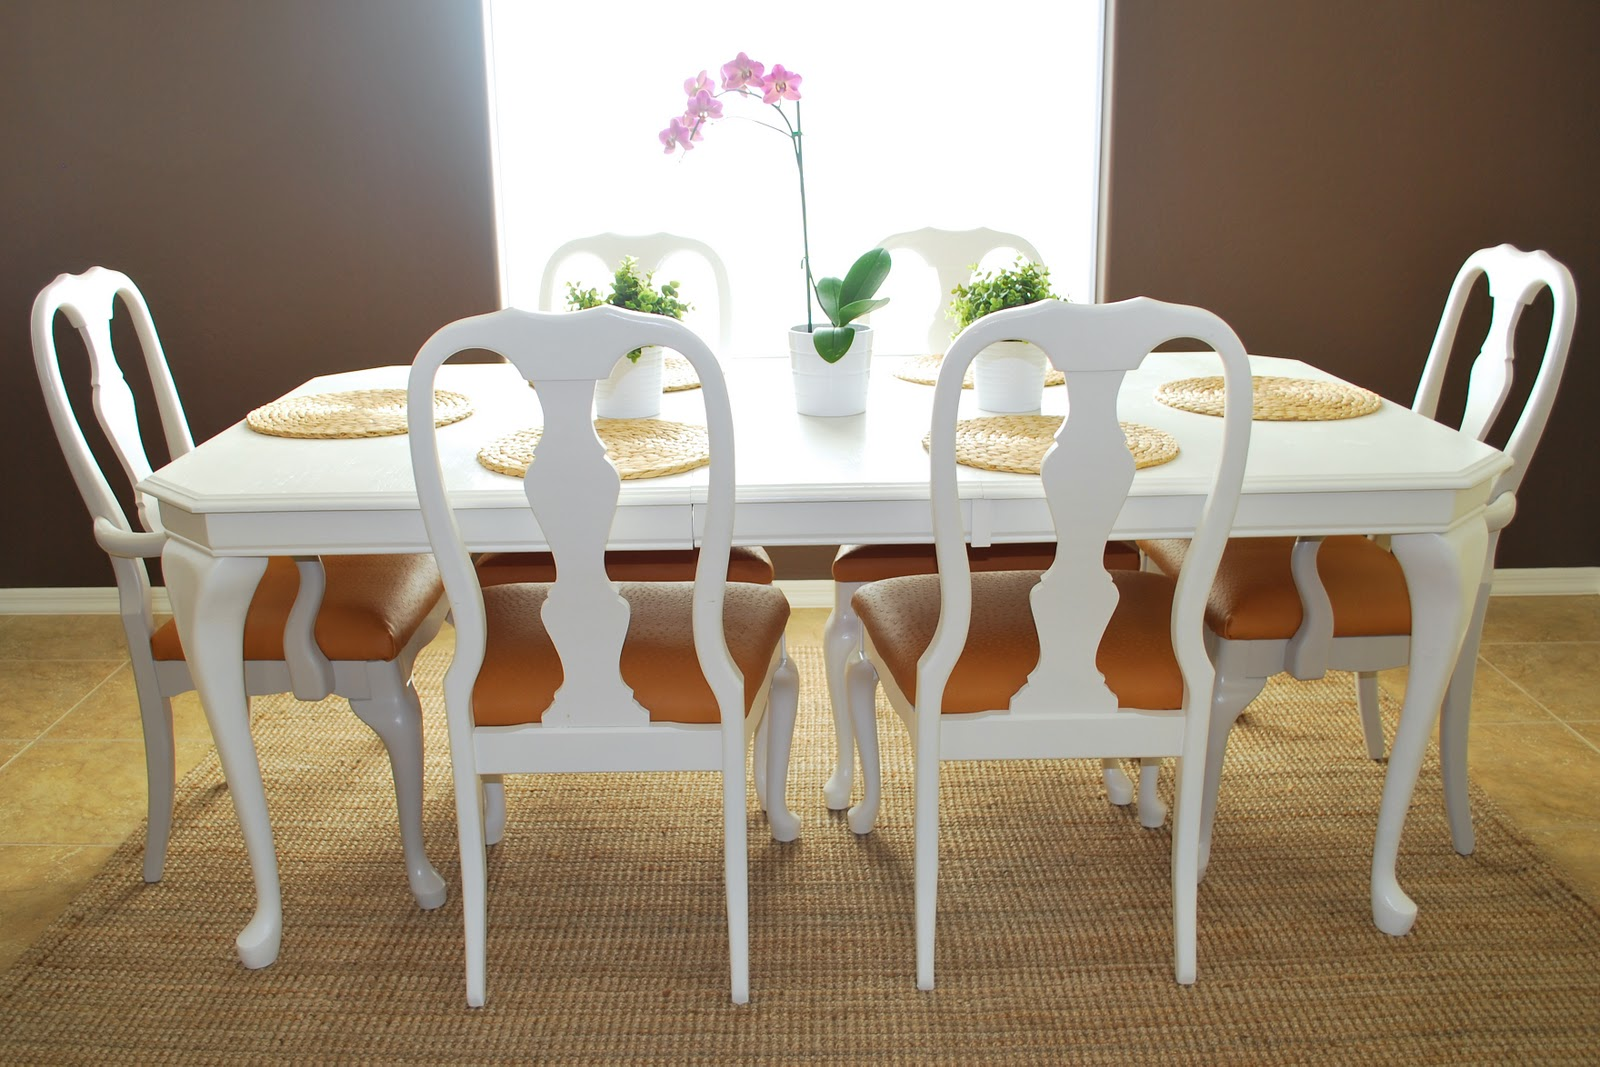 chairs for dining room table | Remodelaholic | Refinished Dining Room Table and Chair Re ...